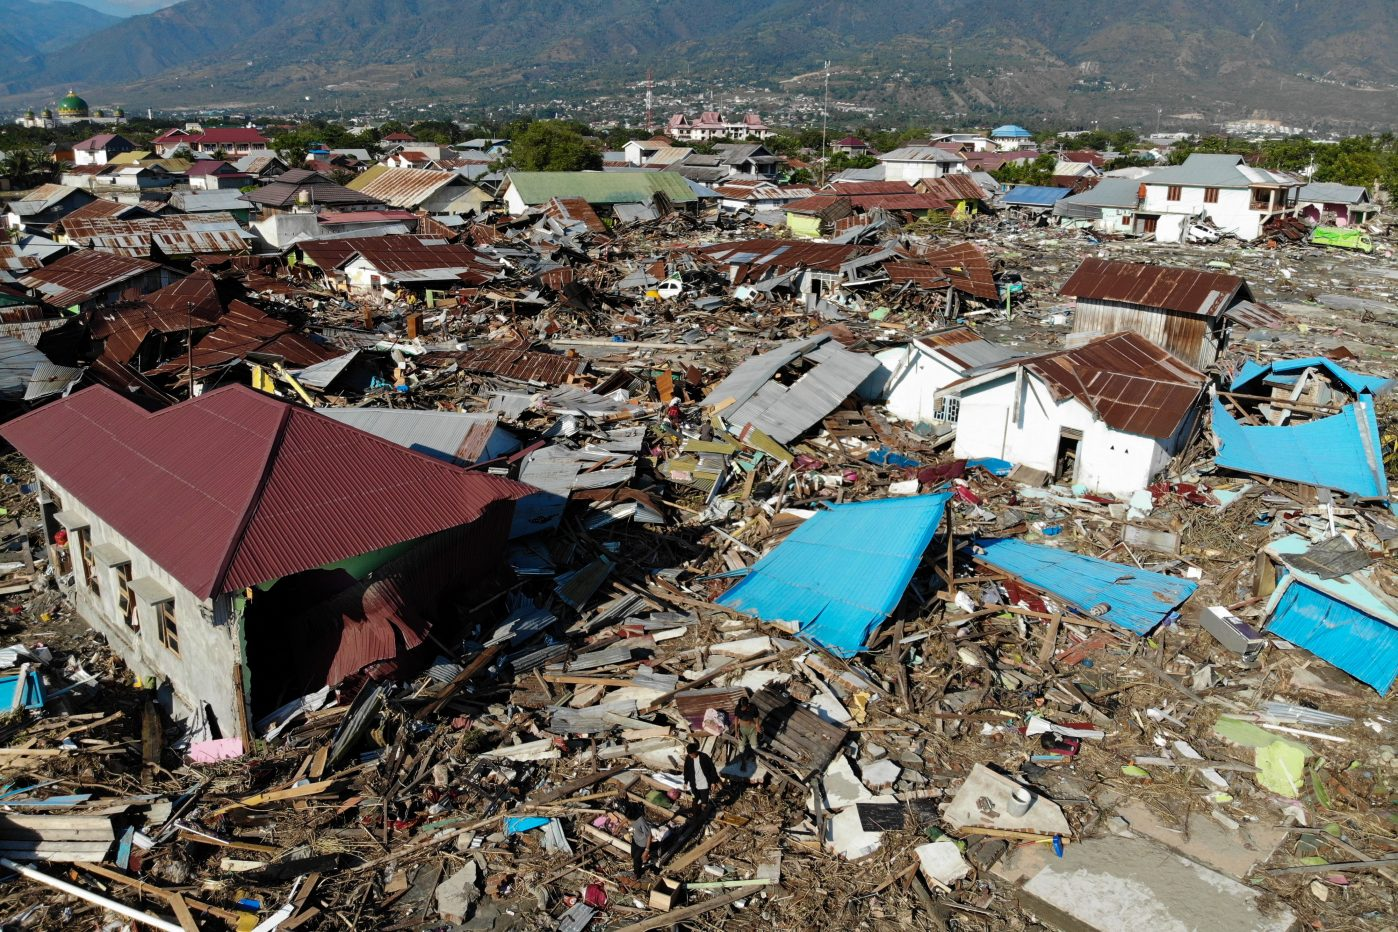 UK travel BAN - Massive earthquake in Indonesia, 26 dead -Biden unveils pandemic relief package